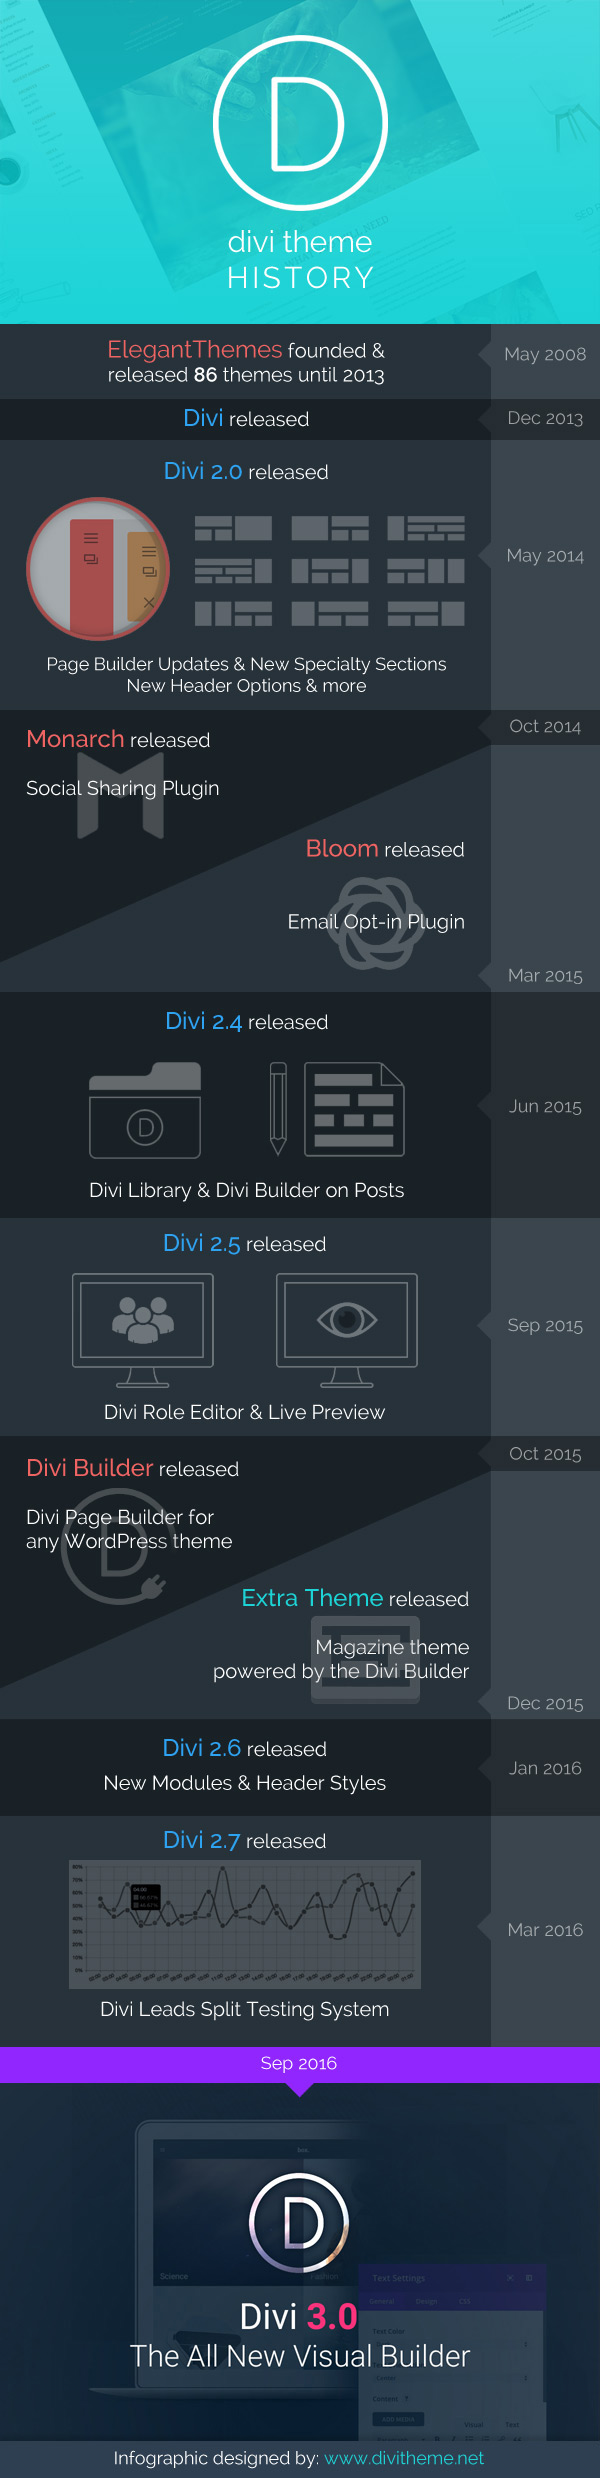 Divi History Infographic by Andrej (http://divitheme.net/)